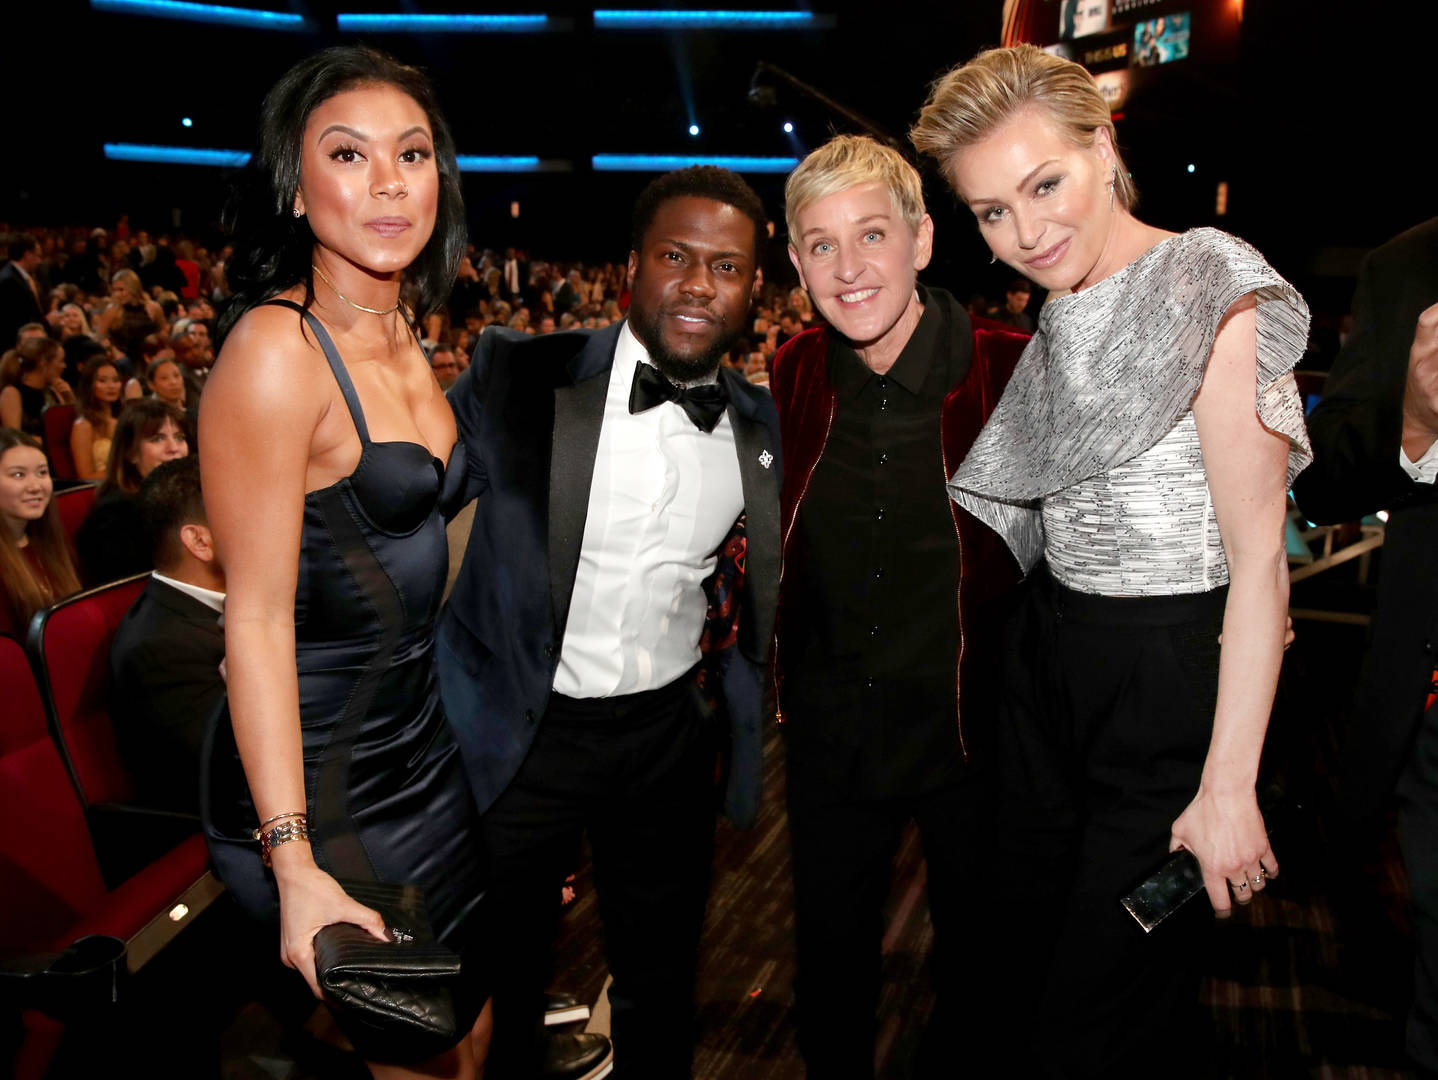 Professional Grievance Mob Going After Ellen for Supporting Kevin Hart | Trending